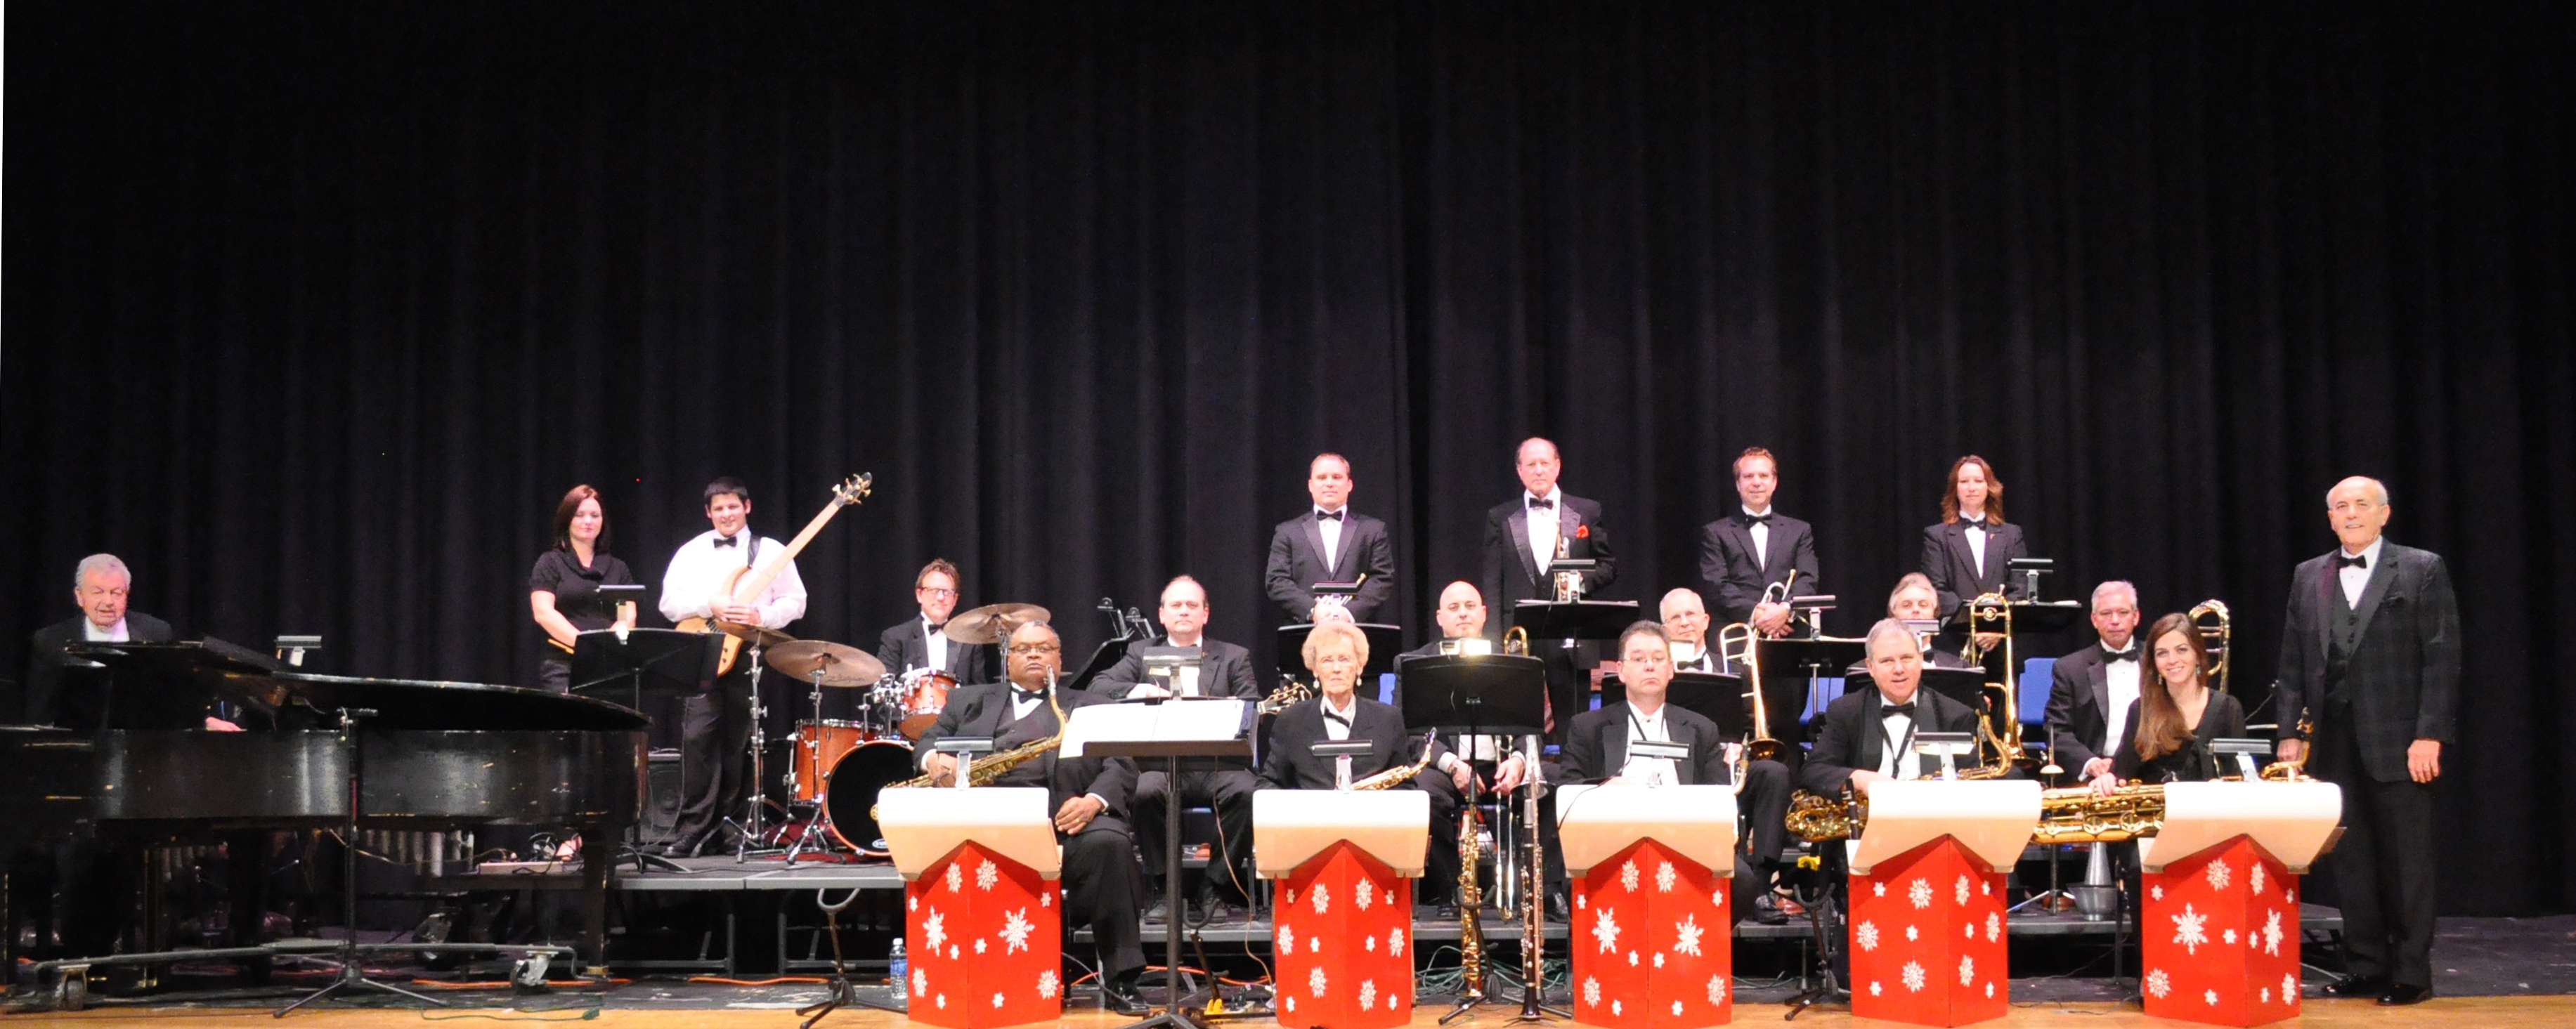 big band merry christmas concert 2013 picture - Big Band Christmas